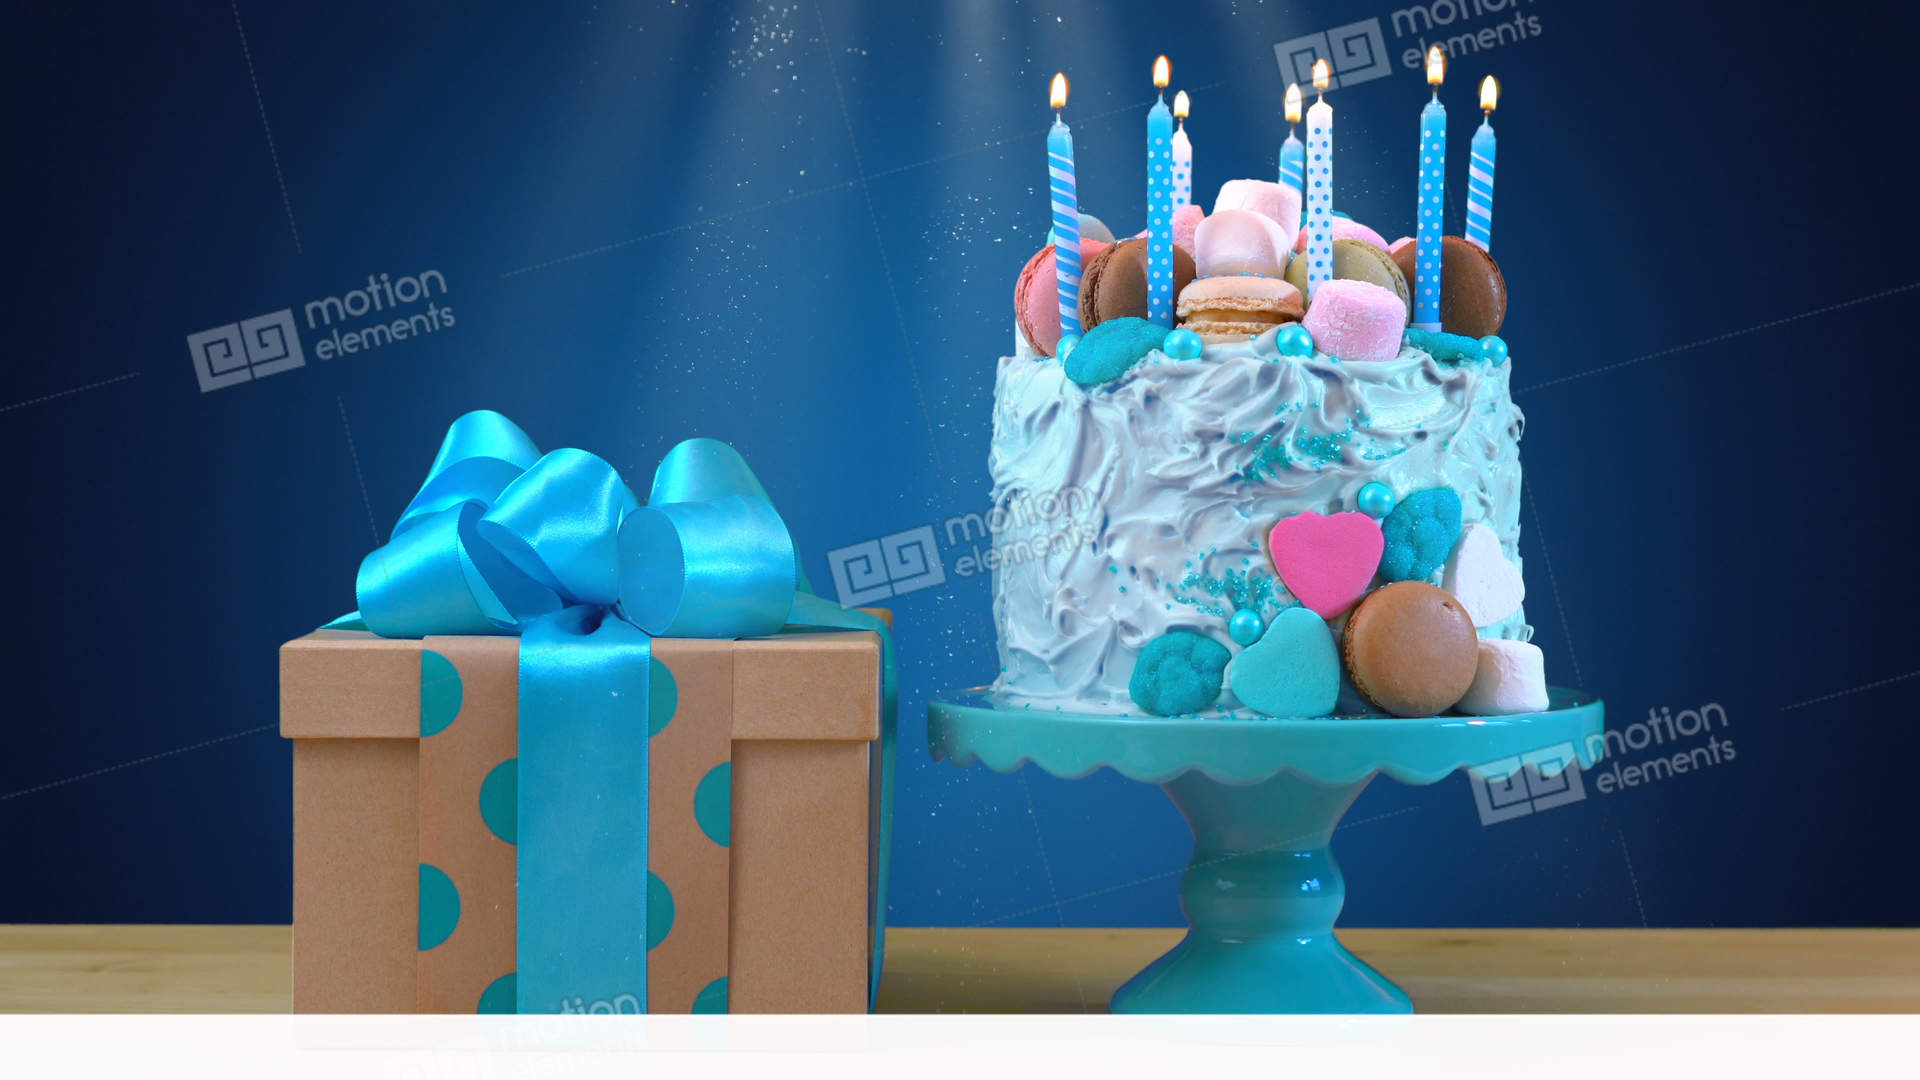 Blue Birthday Celebration Showstopper Cake Decorated With Candy